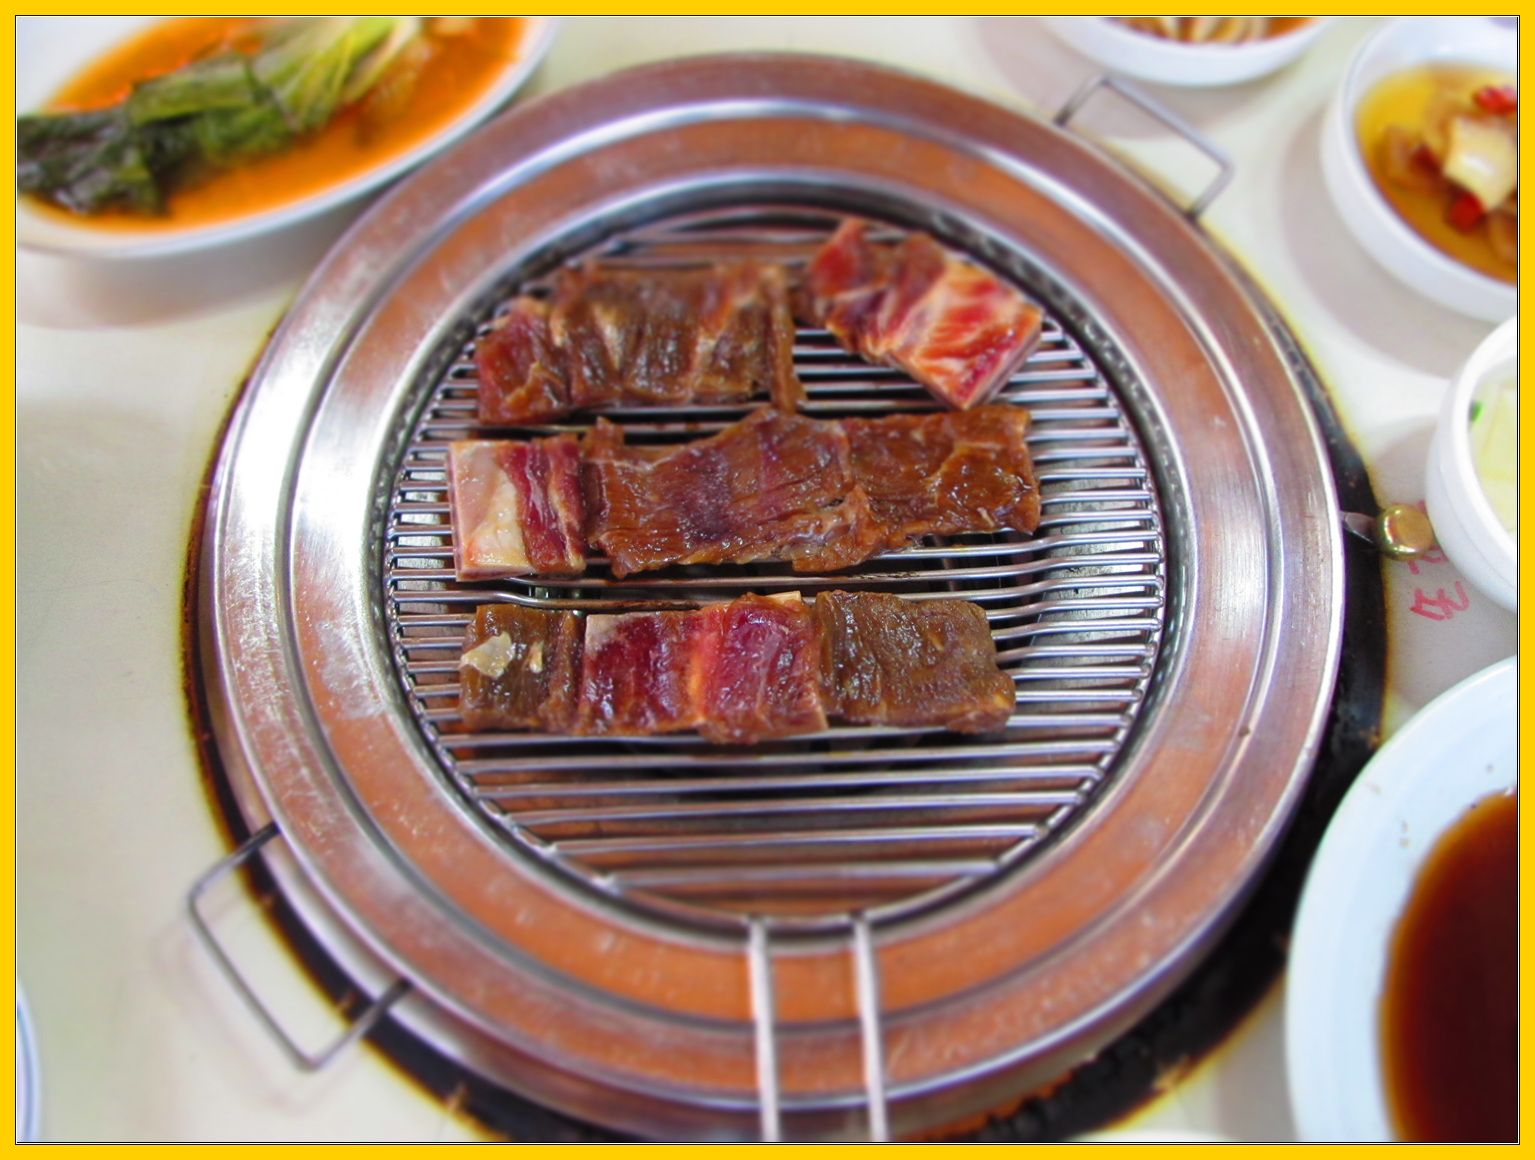 Galbi Meaning Short Ribs In Korean Is One Of The Most Widely Loved Korean Dishes In The West Galbi Is A Dish Of Marinated And Grilled Beef Short Ribs The Ri